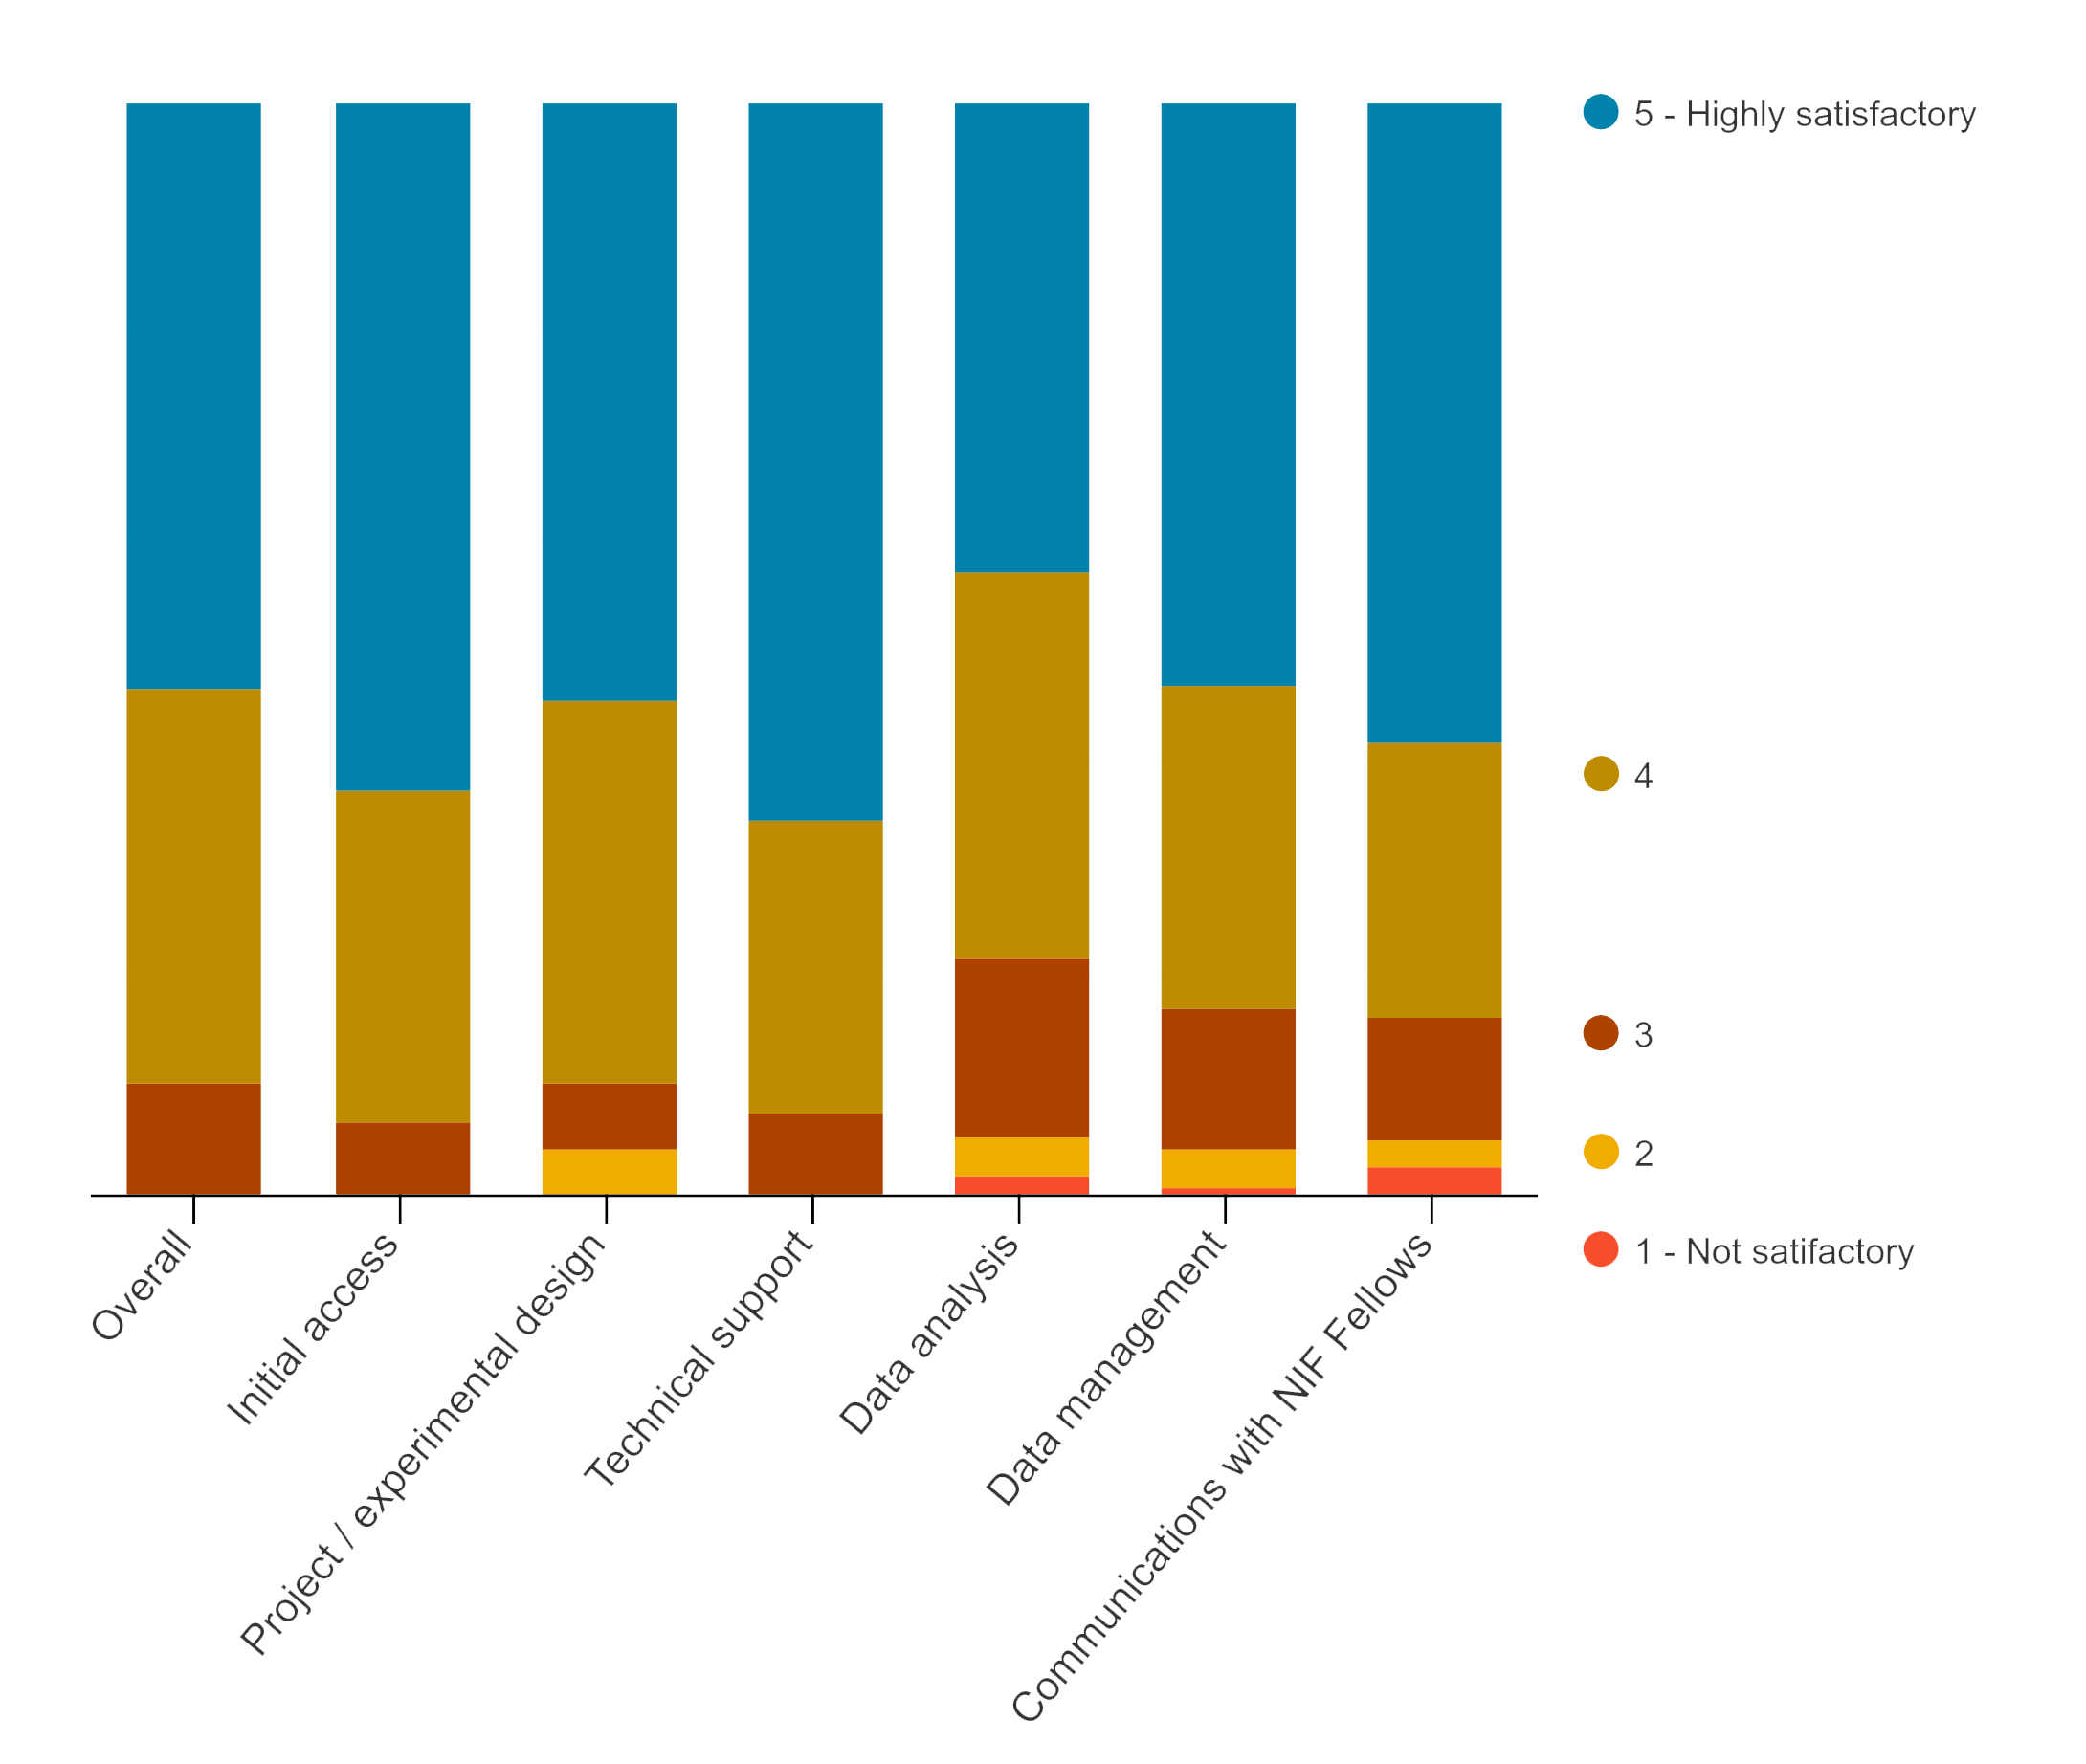 bar chart showing that most respondents rated their satisfaction as 4 or 5 (highly satisfactory)